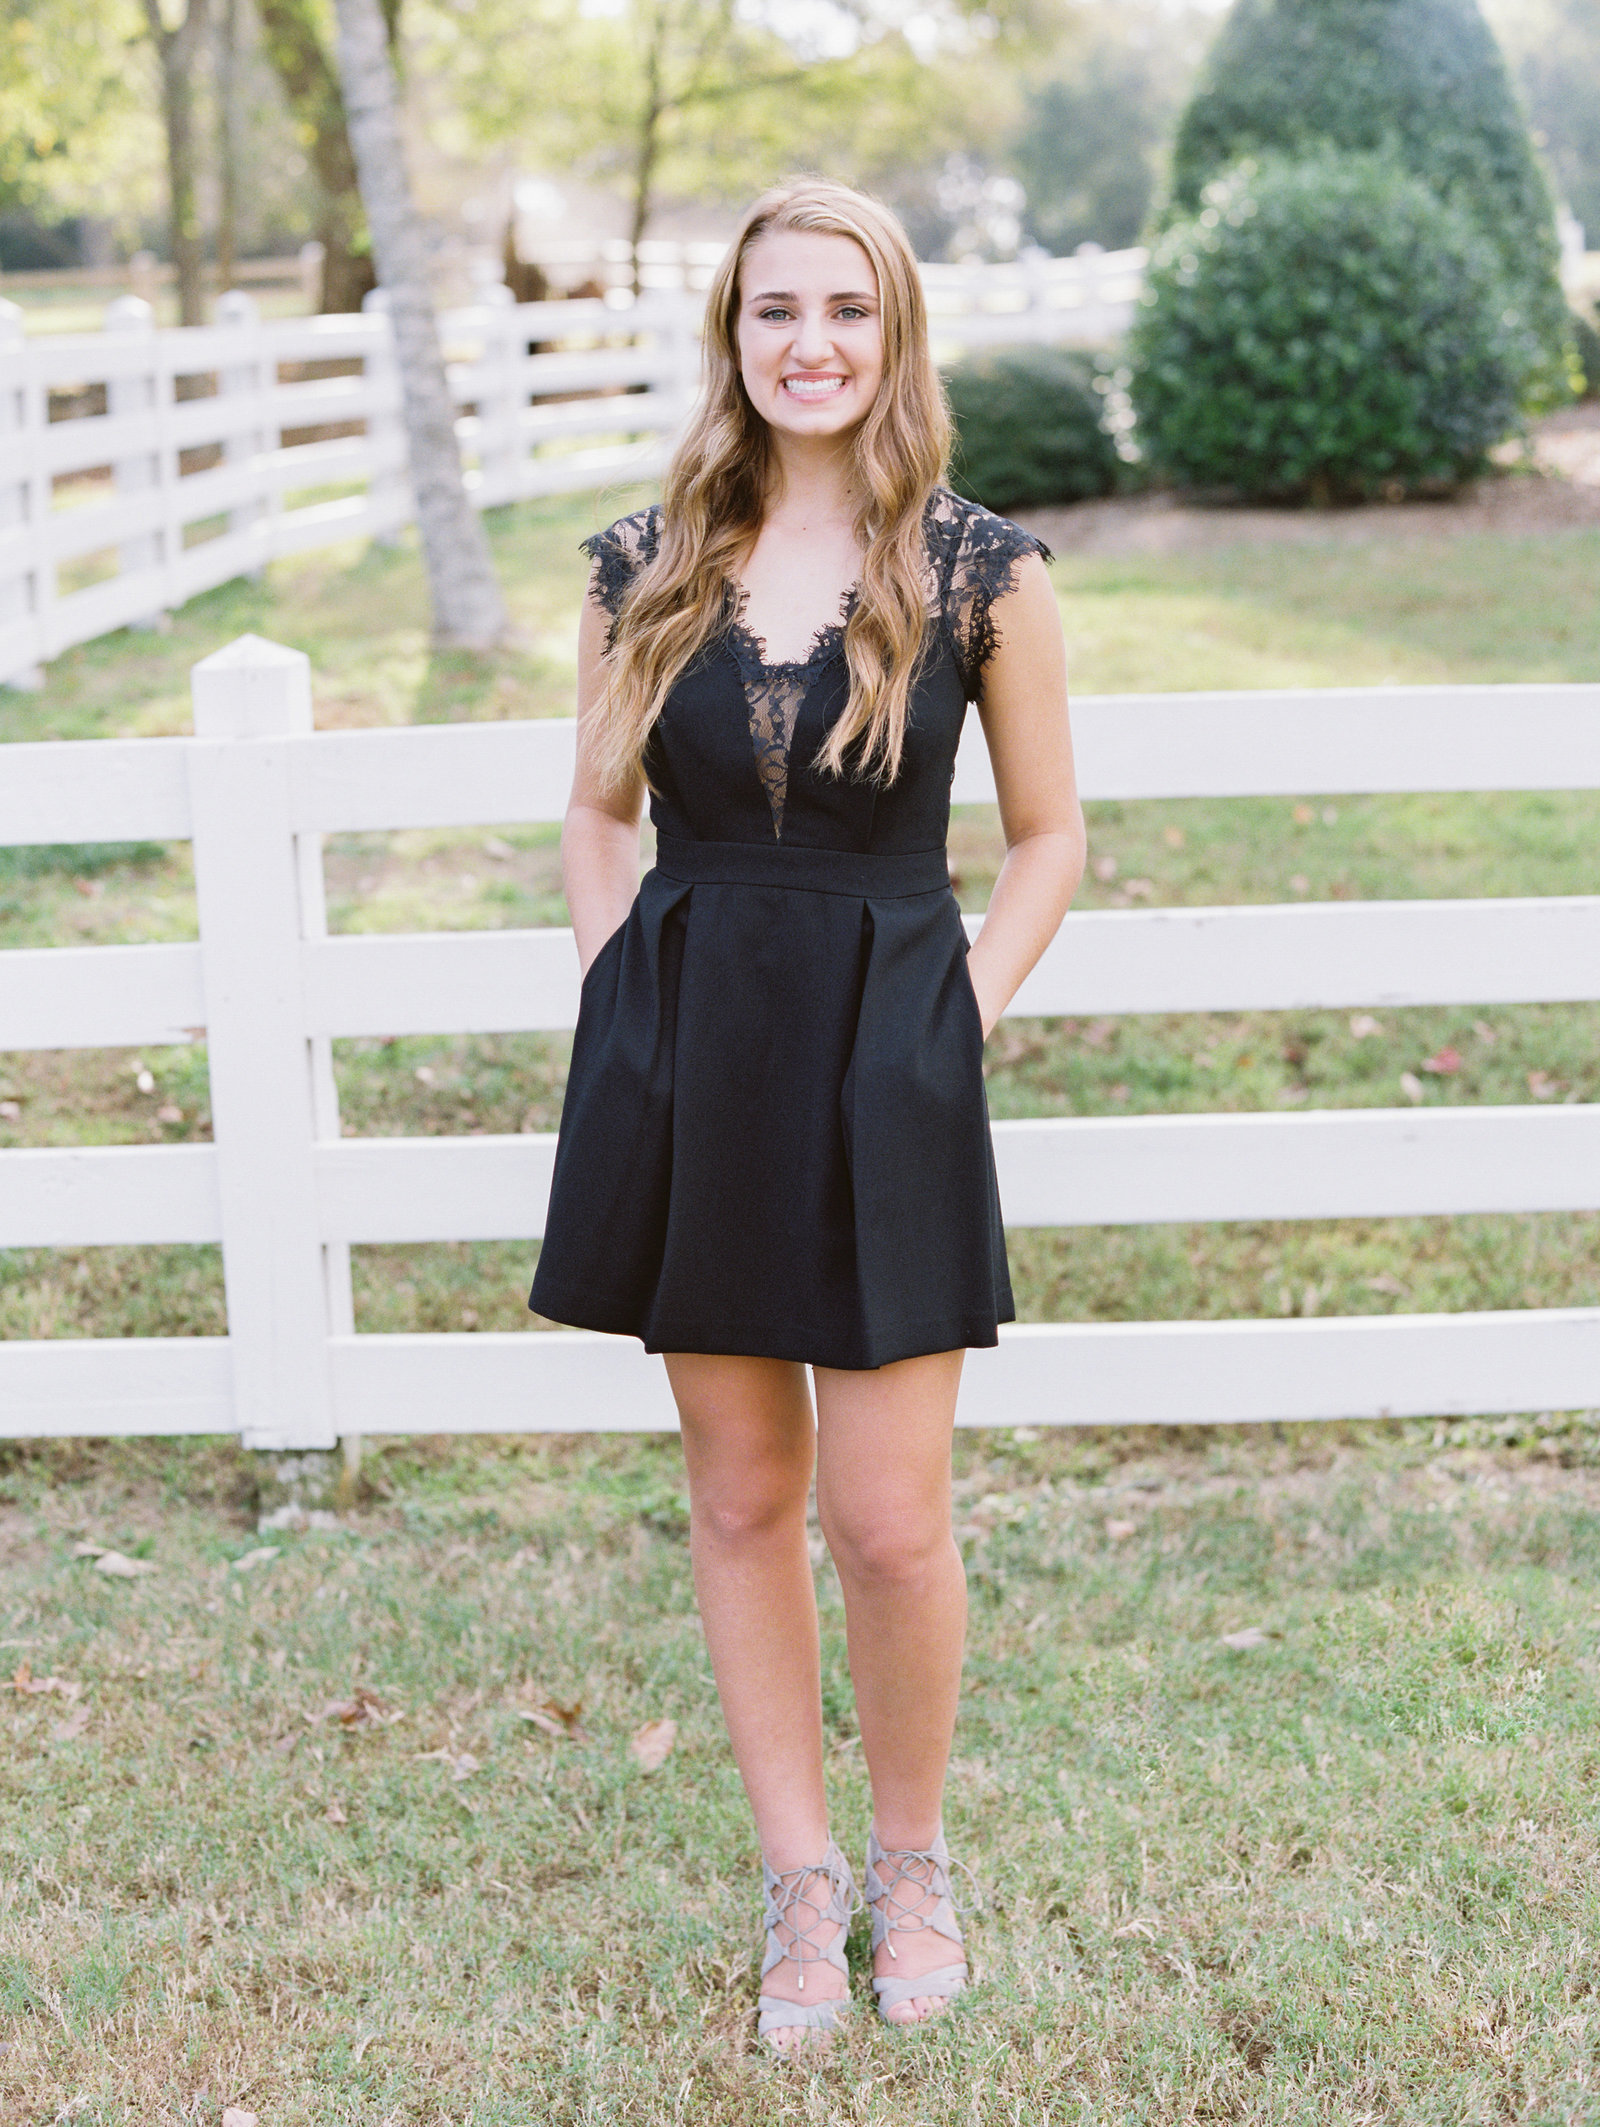 raleigh_nc_film_photographper_senior_pictures_casey_rose_colleen_015